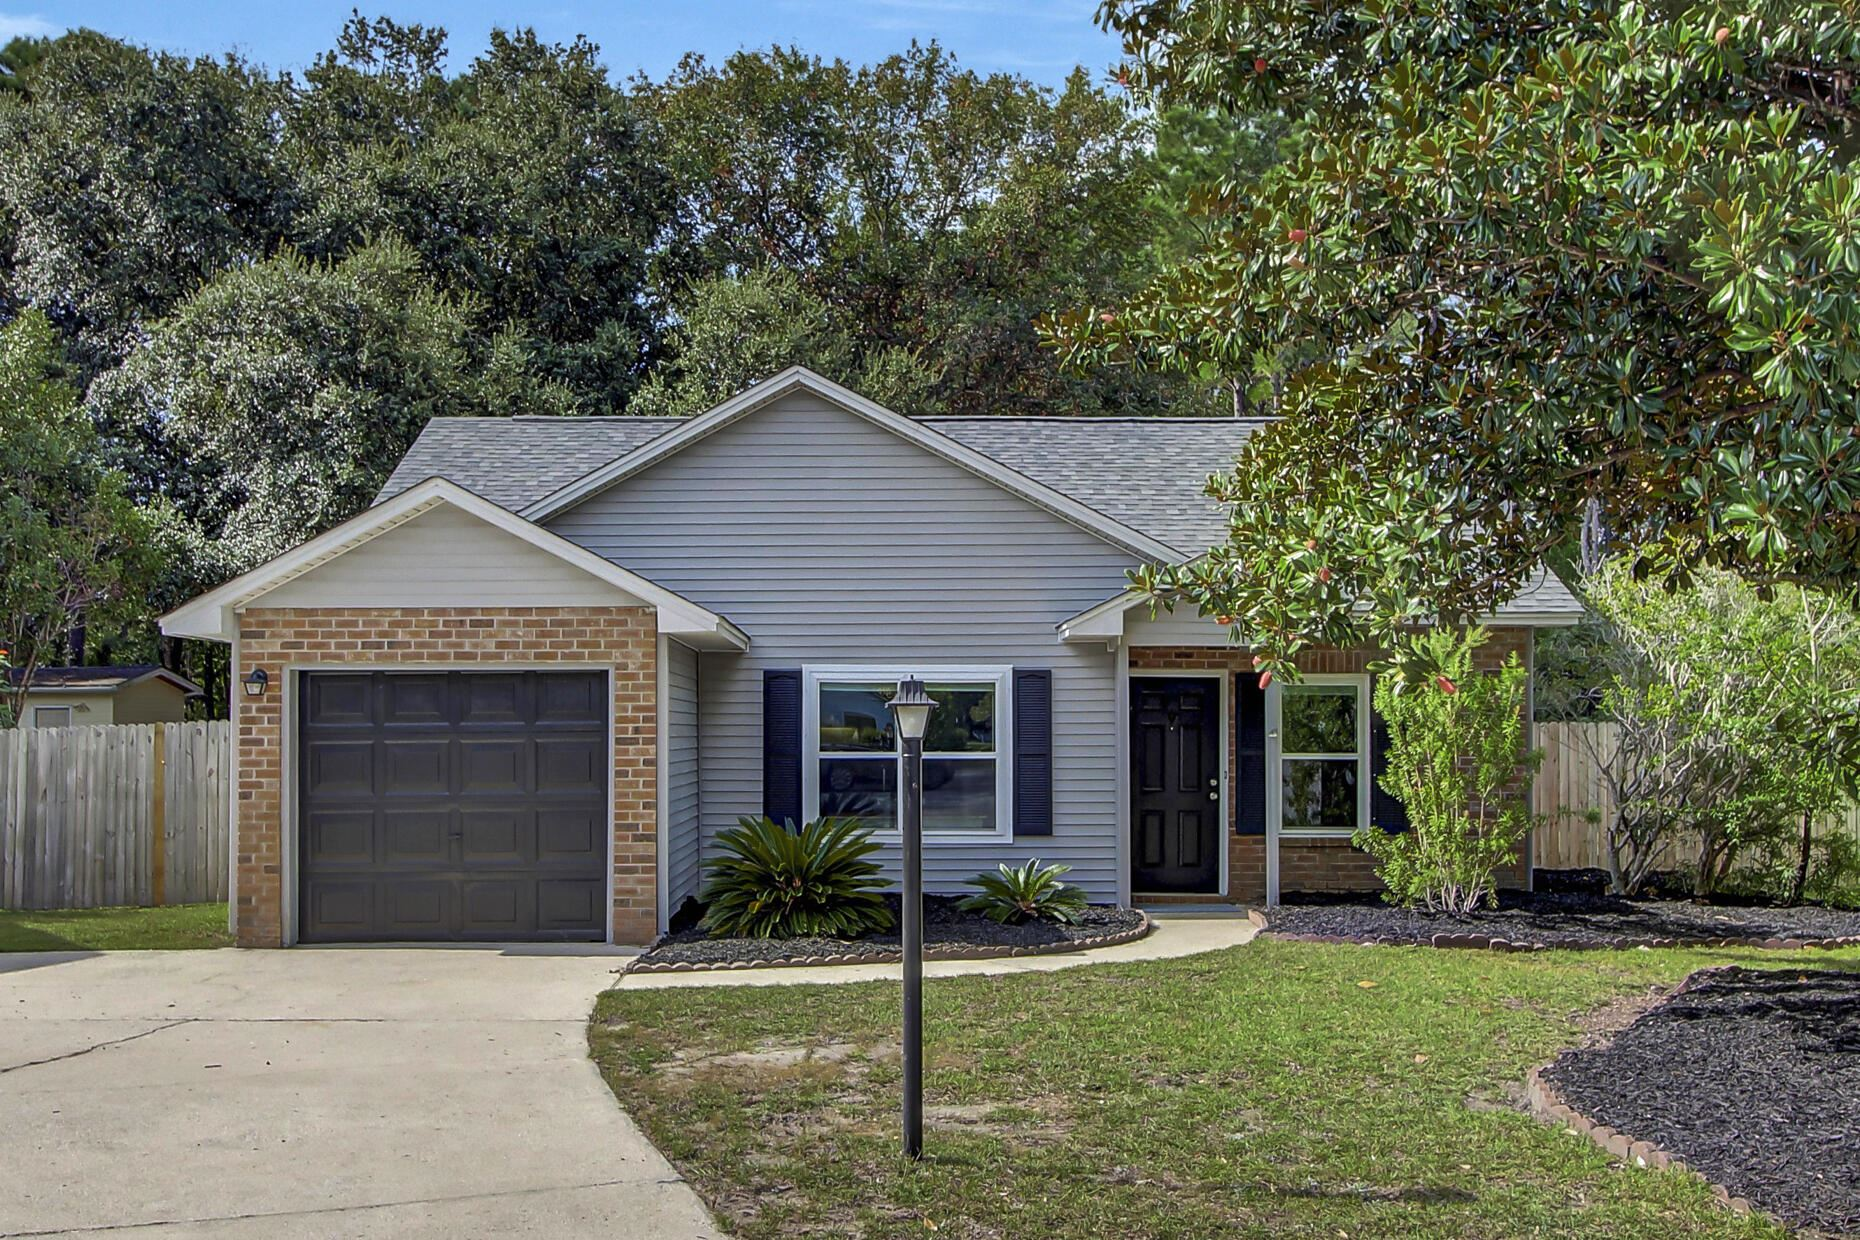 Photo of 2030 Armory Drive, Mount Pleasant, SC 29466 (MLS # 21025530)